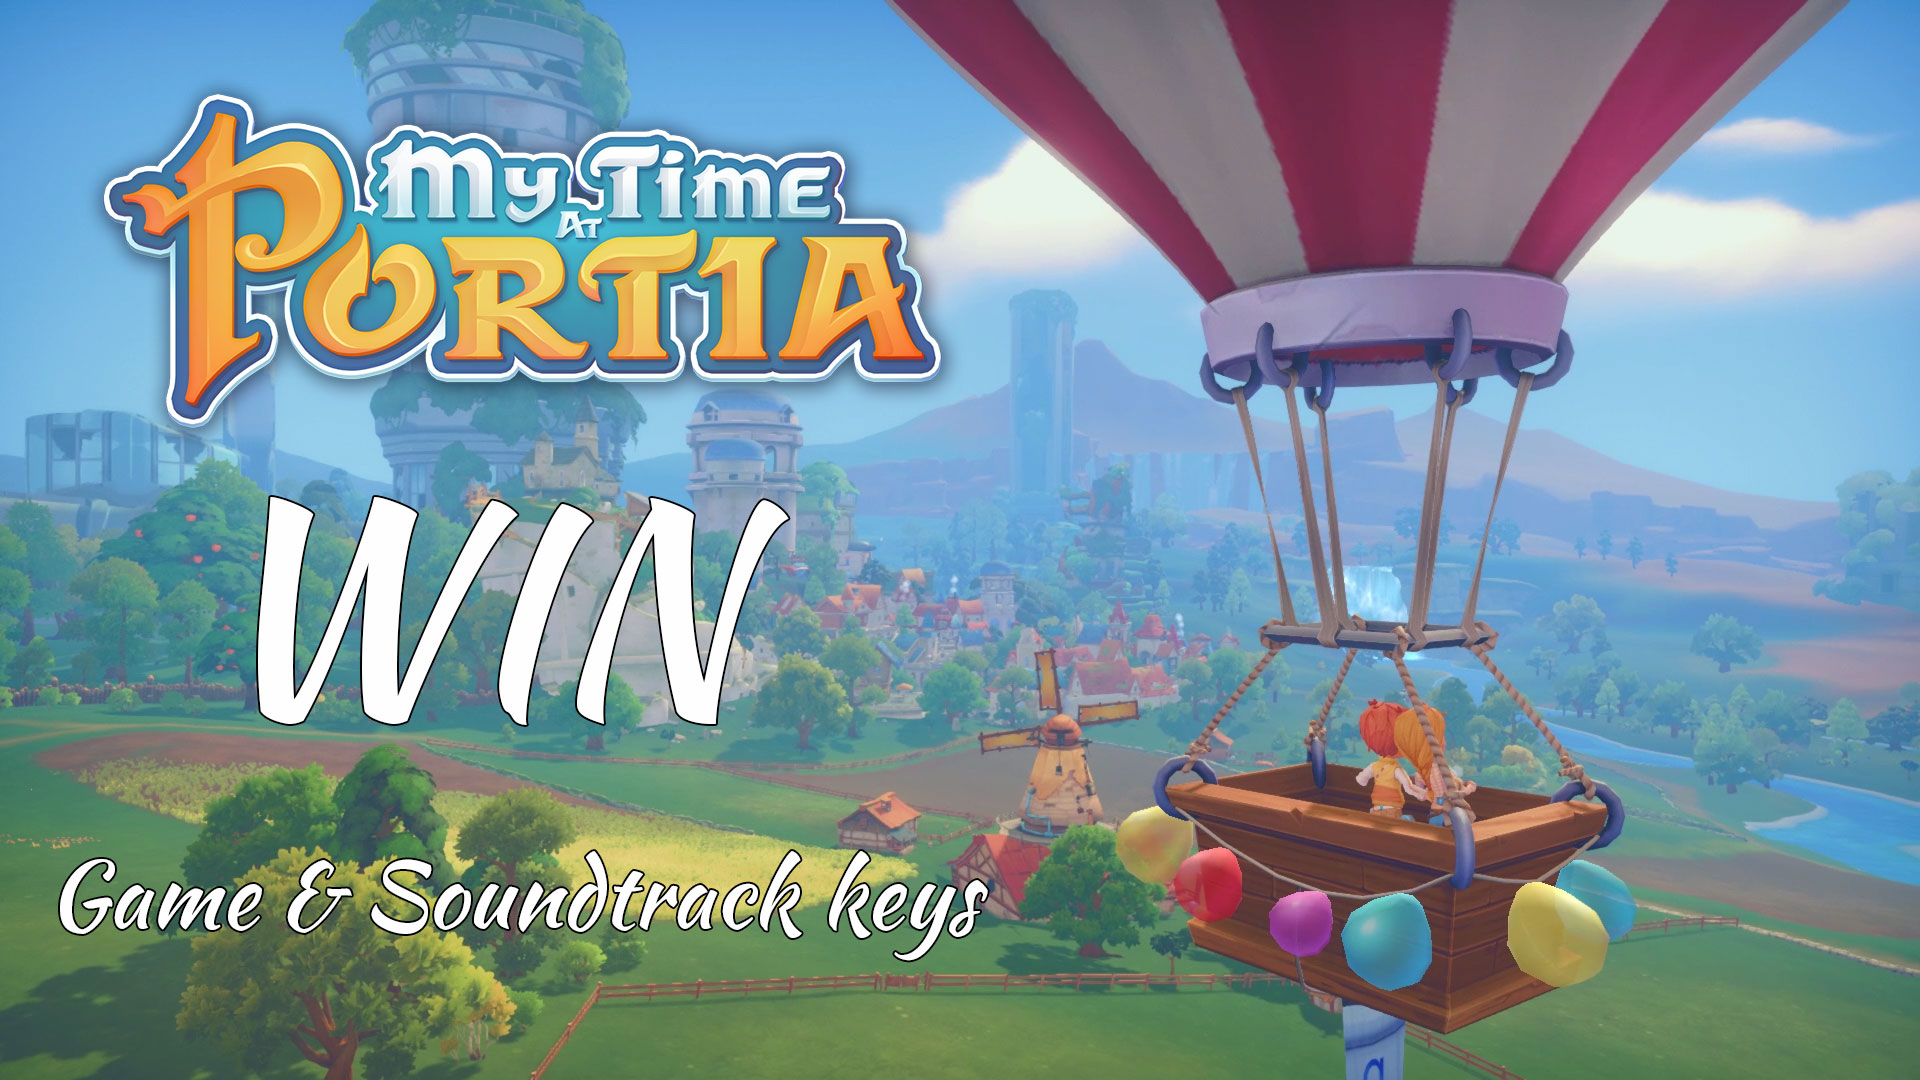 My Time At Portia: New Relationships Trailer & Valentine's Day Giveaway!